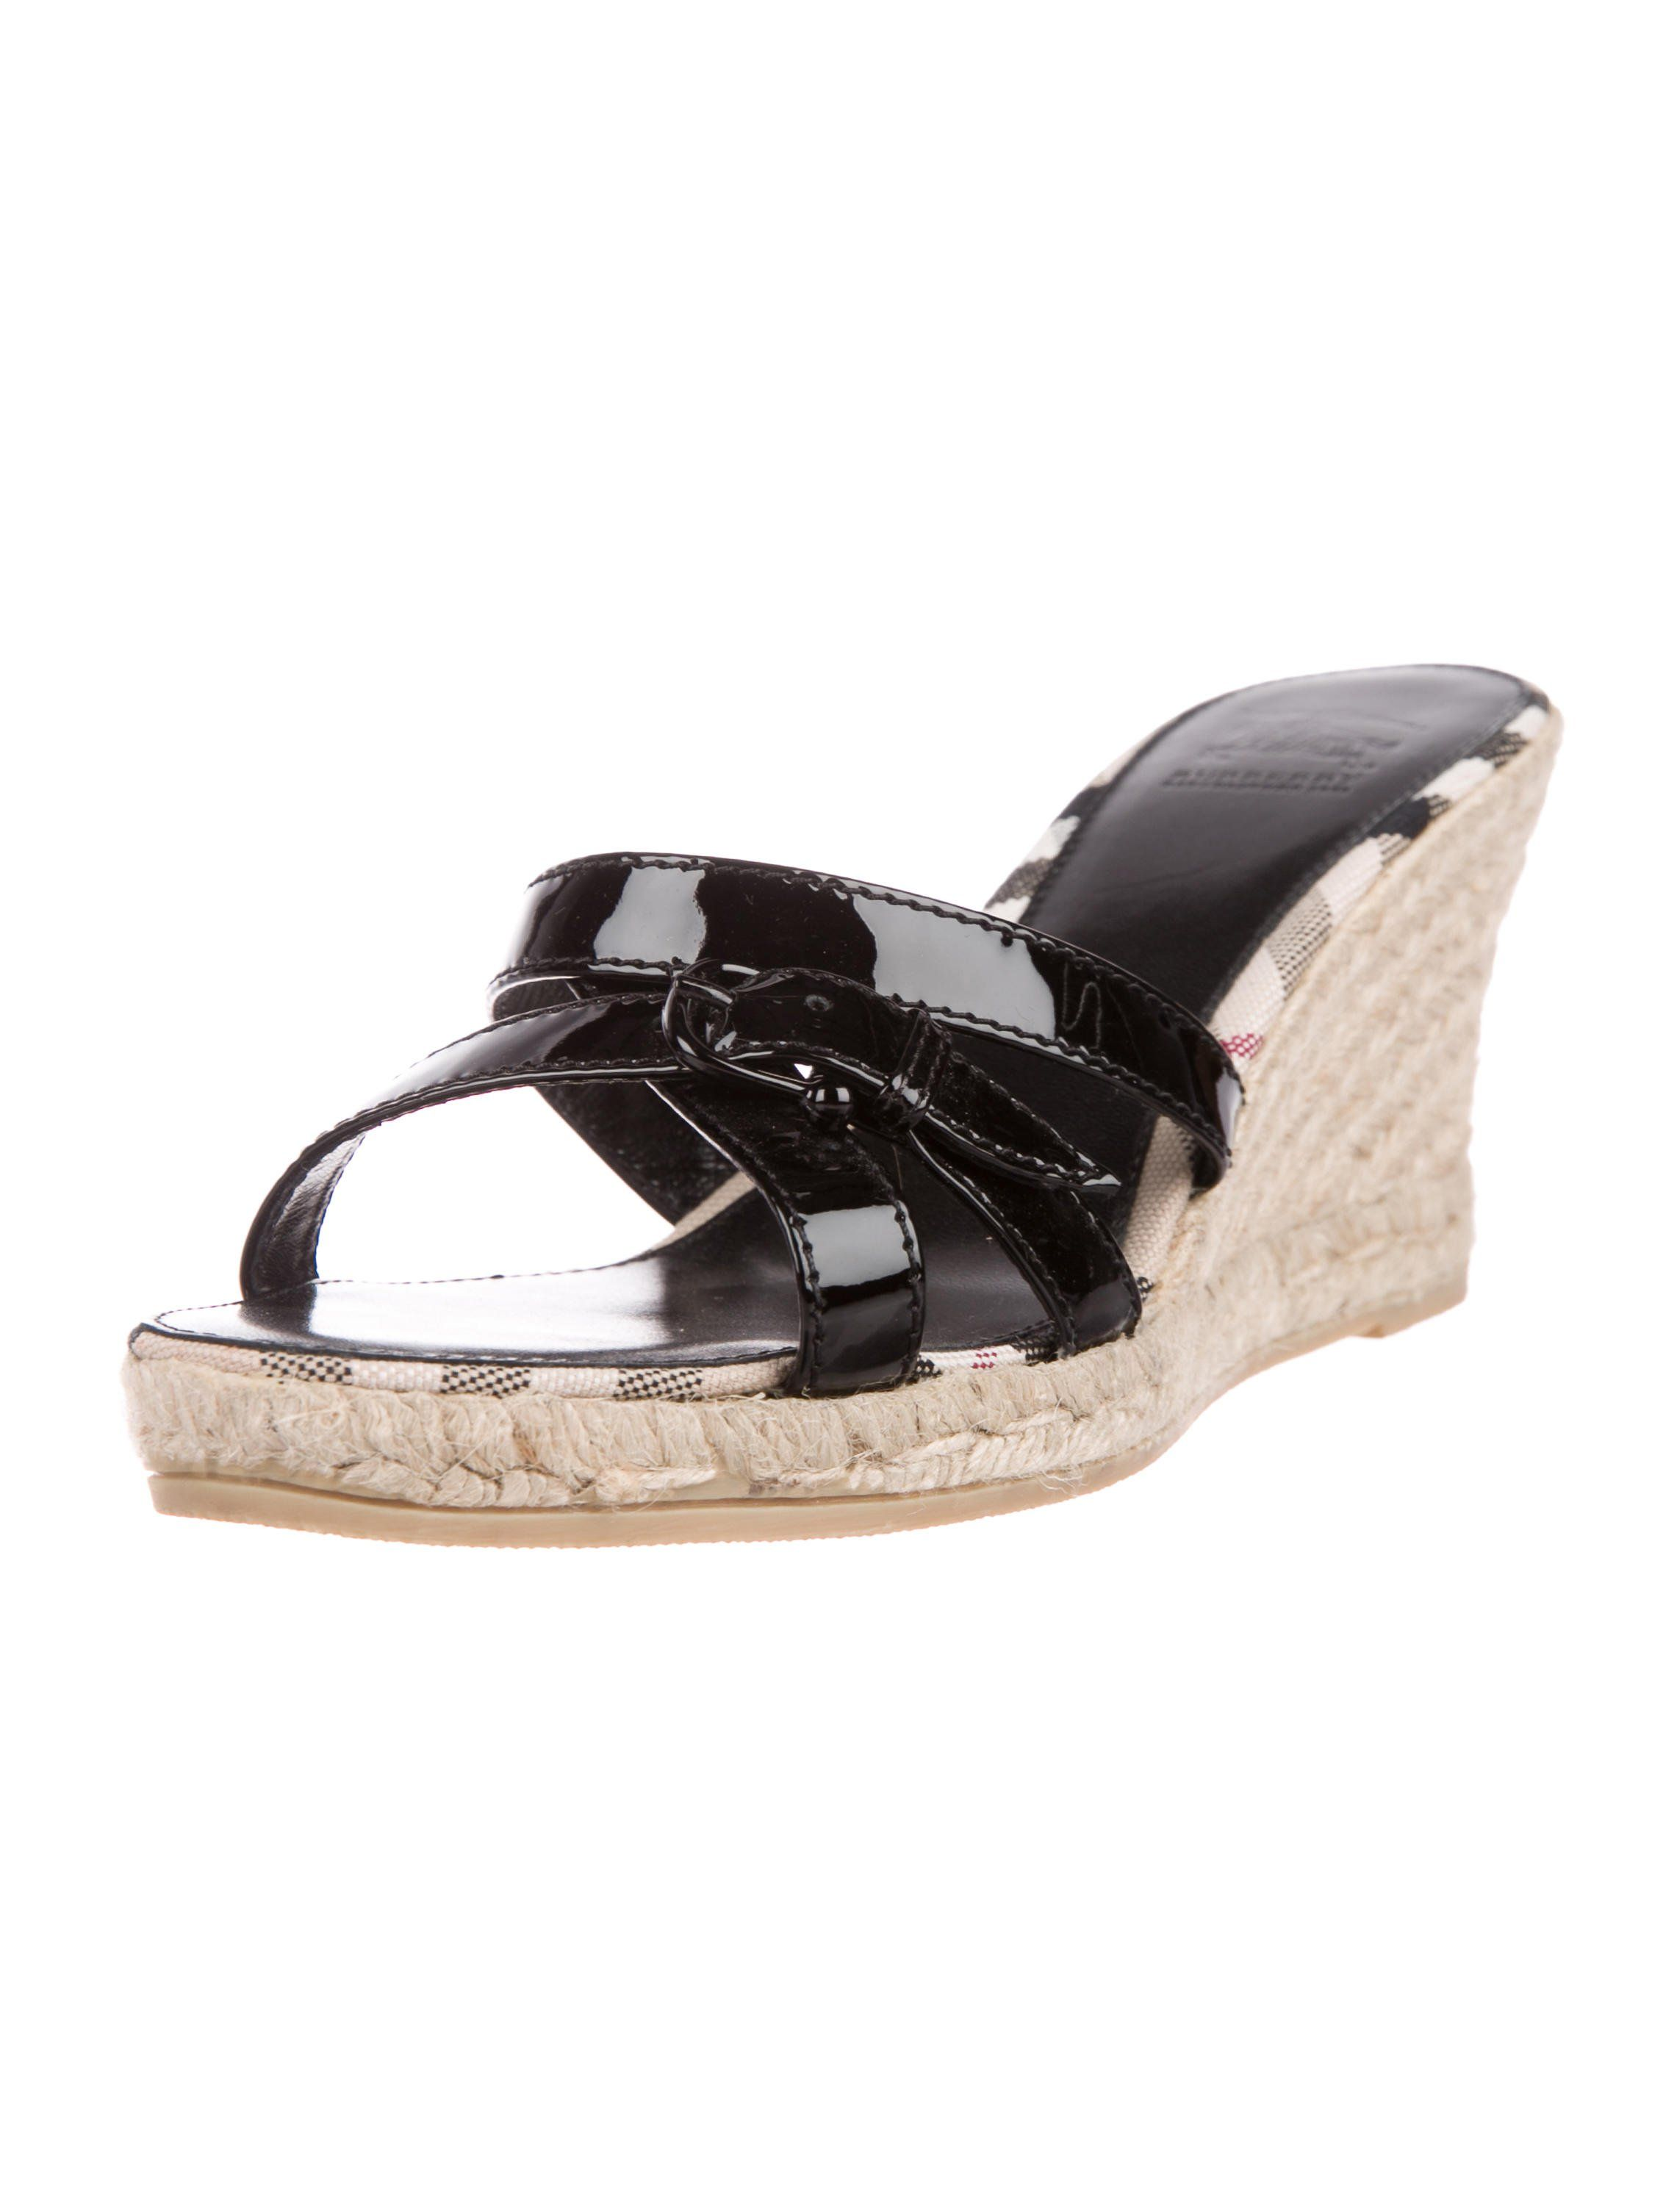 170642cc7 Black patent leather Burberry slide sandals with tan jute-covered wedge  platform soles.